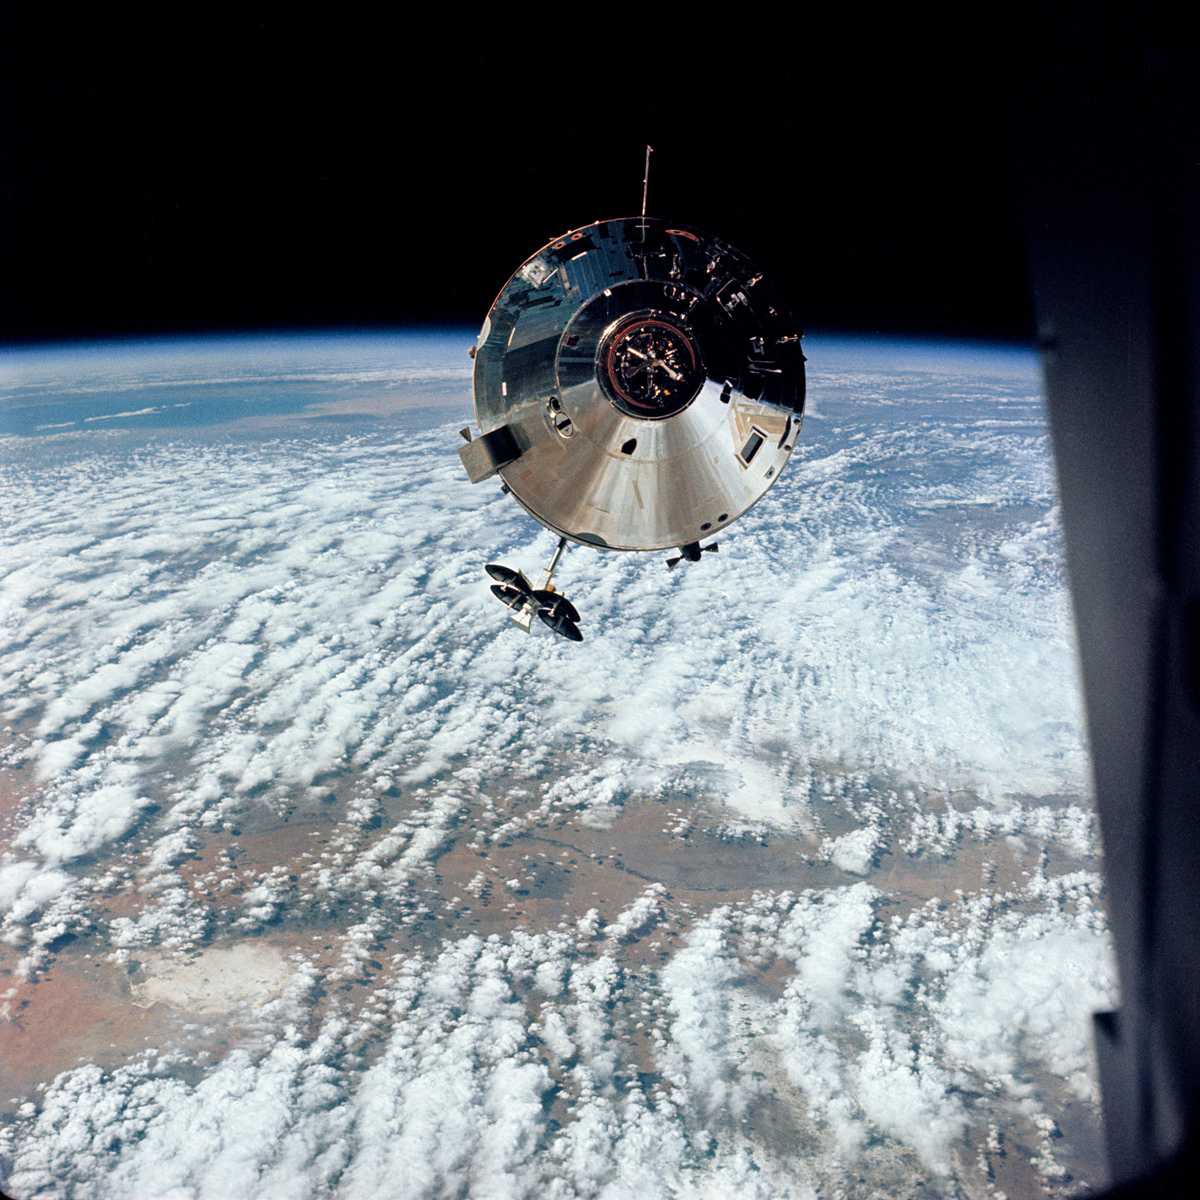 Apollo 9 command module in space with Earth in background